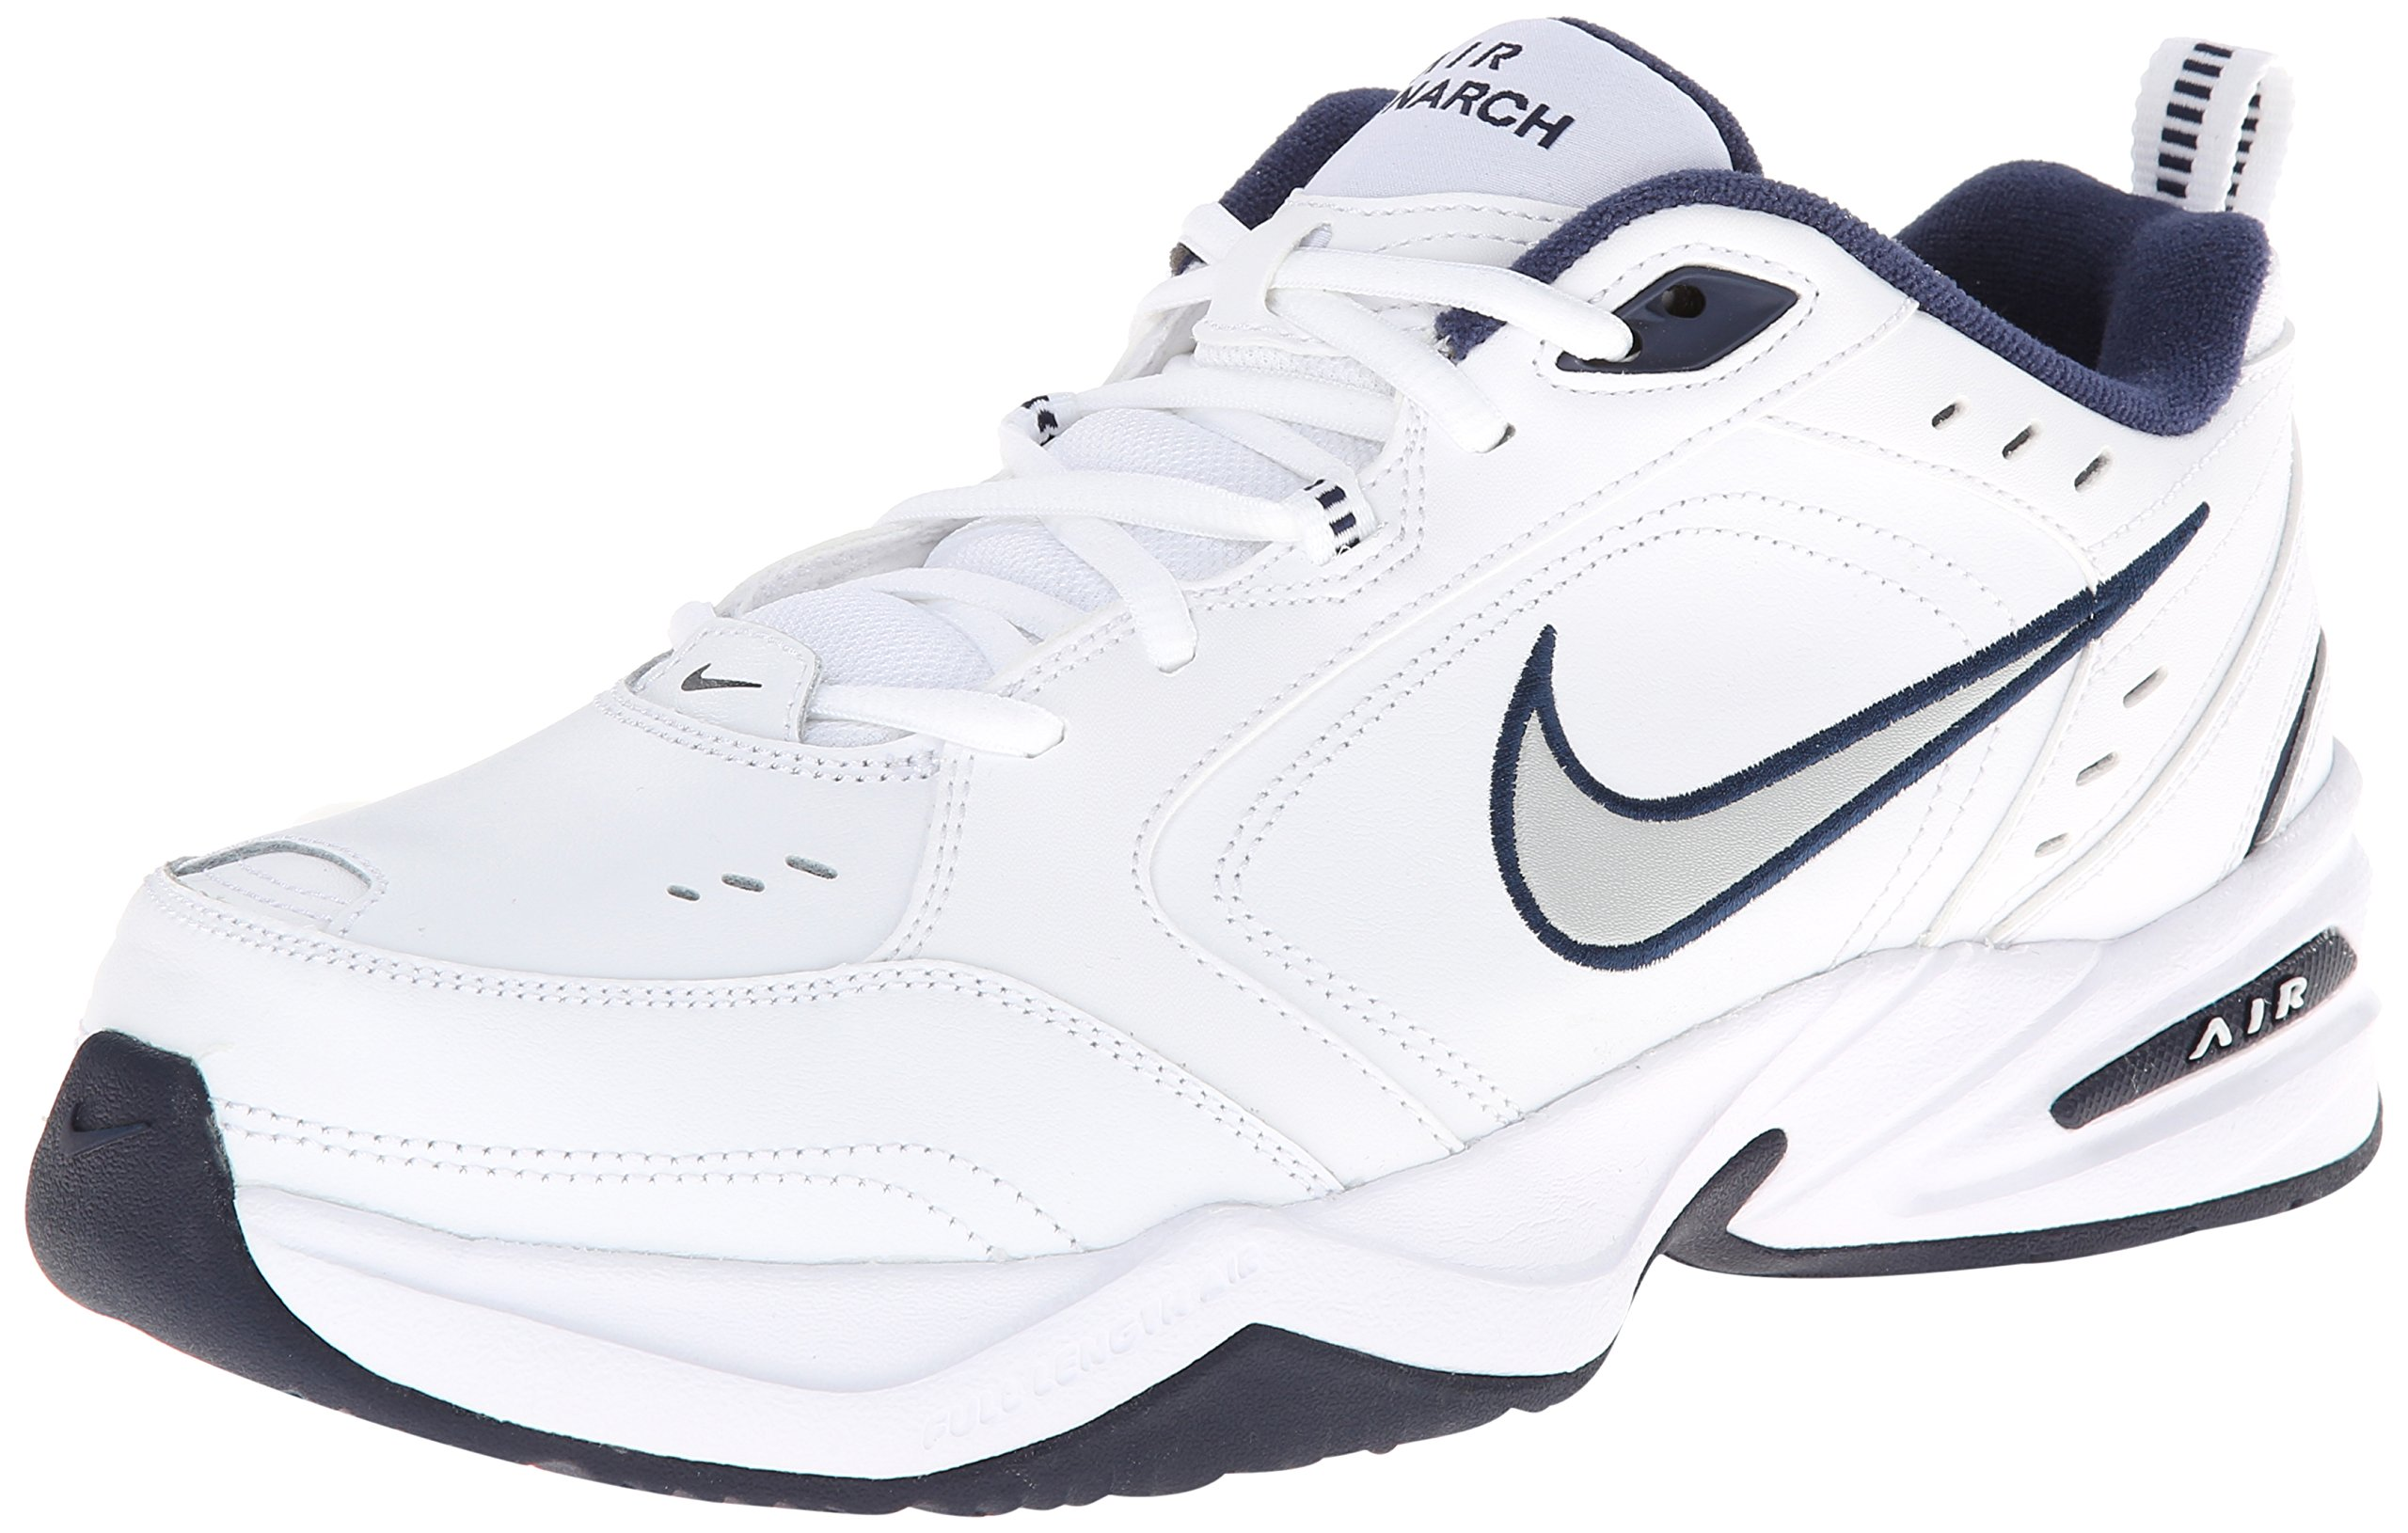 NIKE Men's Air Monarch Iv Cross Trainer,White/Metallic Silver/Midnight Navy,13 4E US by NIKE